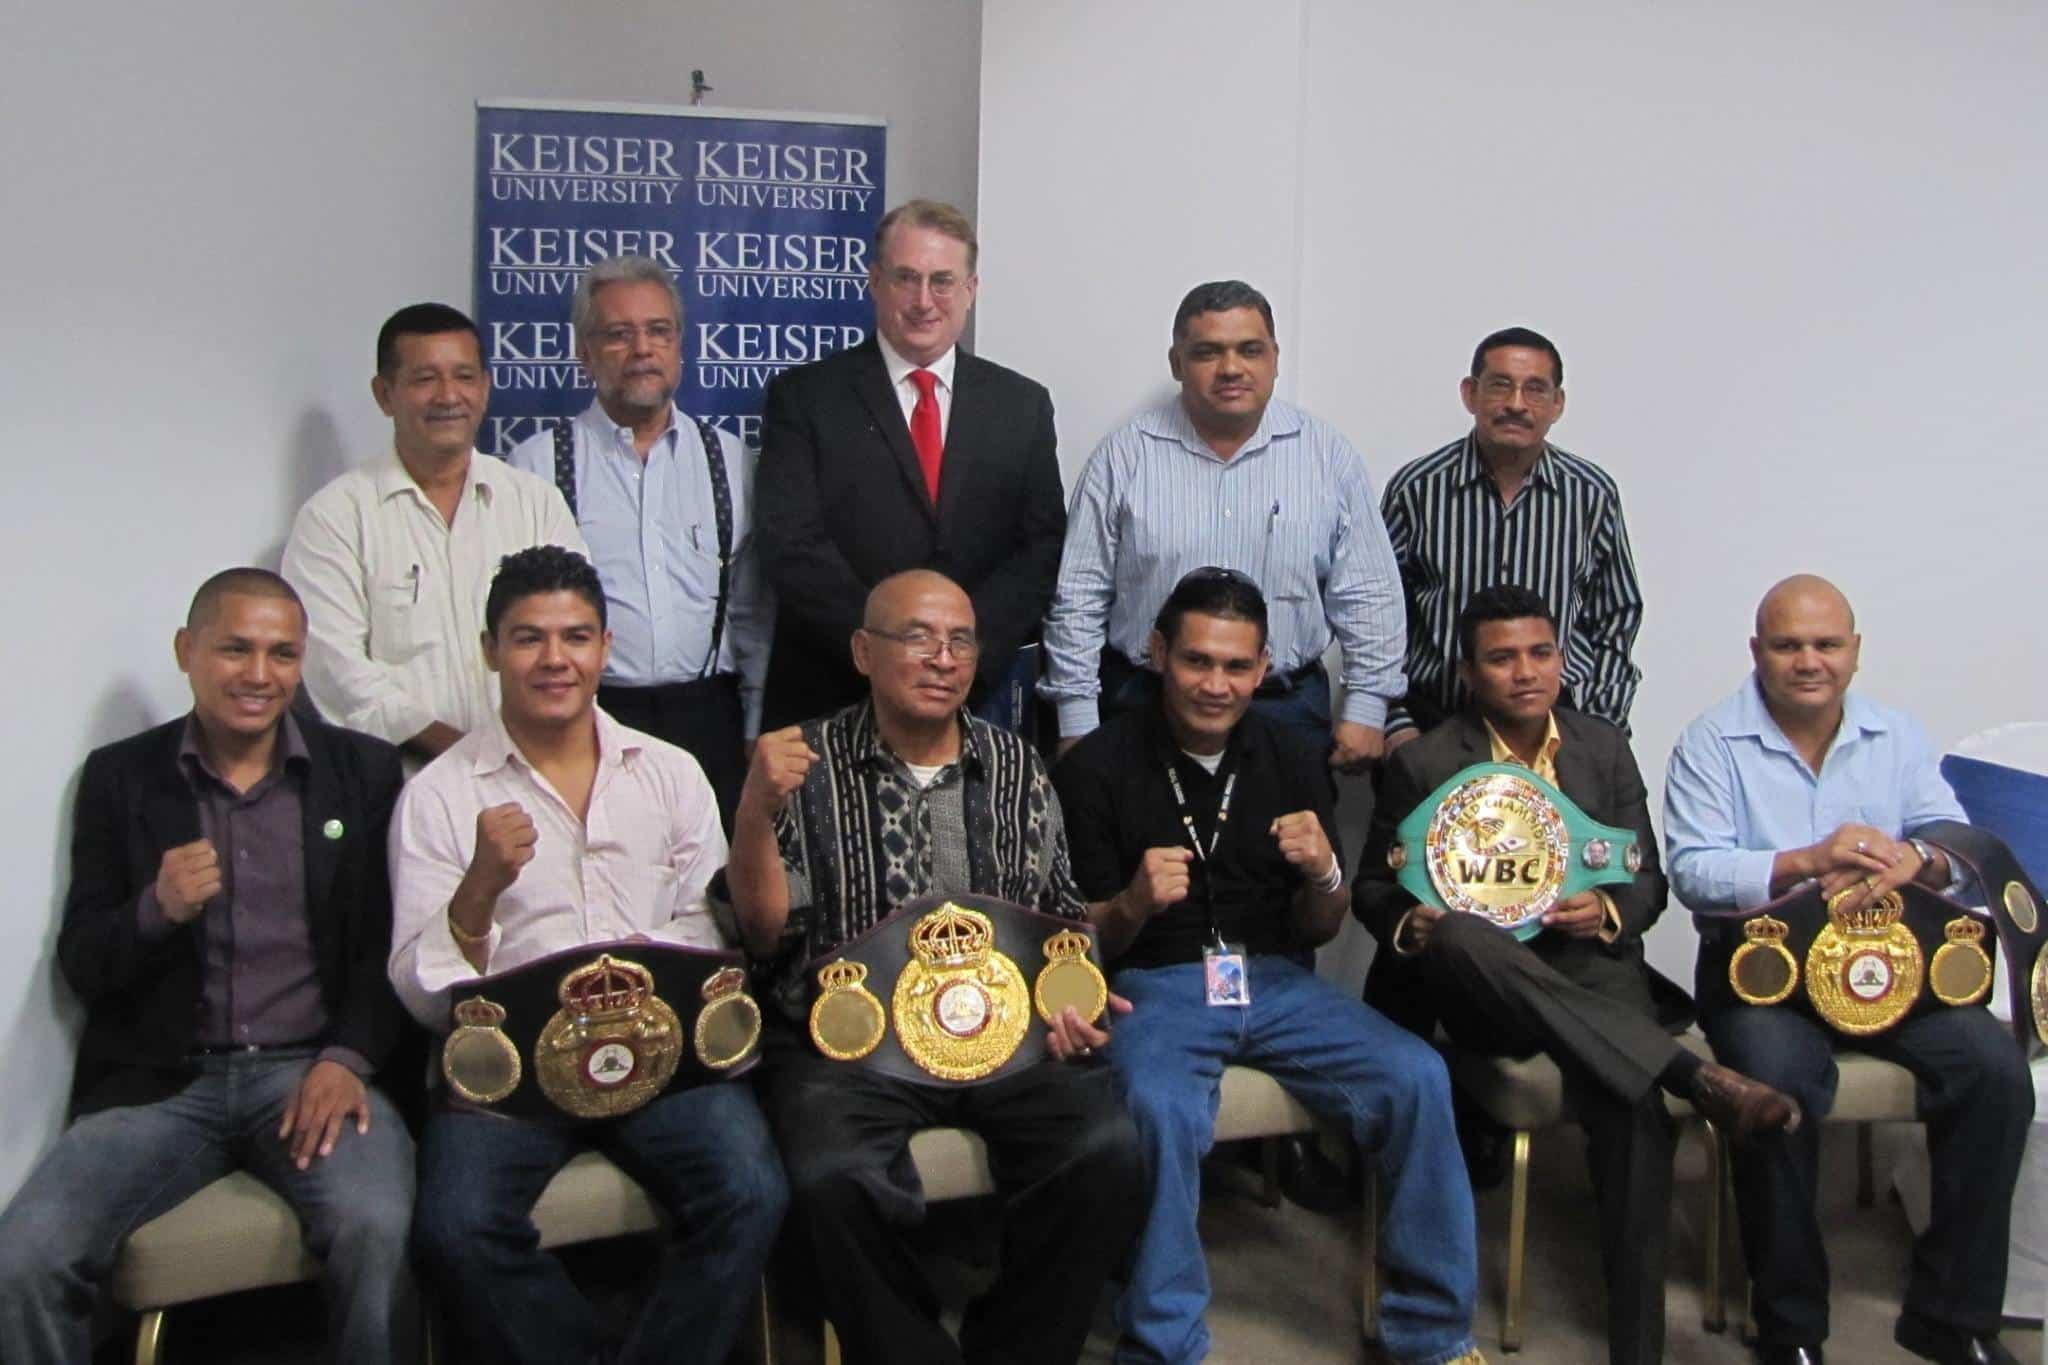 """The Latin American Campus Hosts a """"Night of Champions"""""""